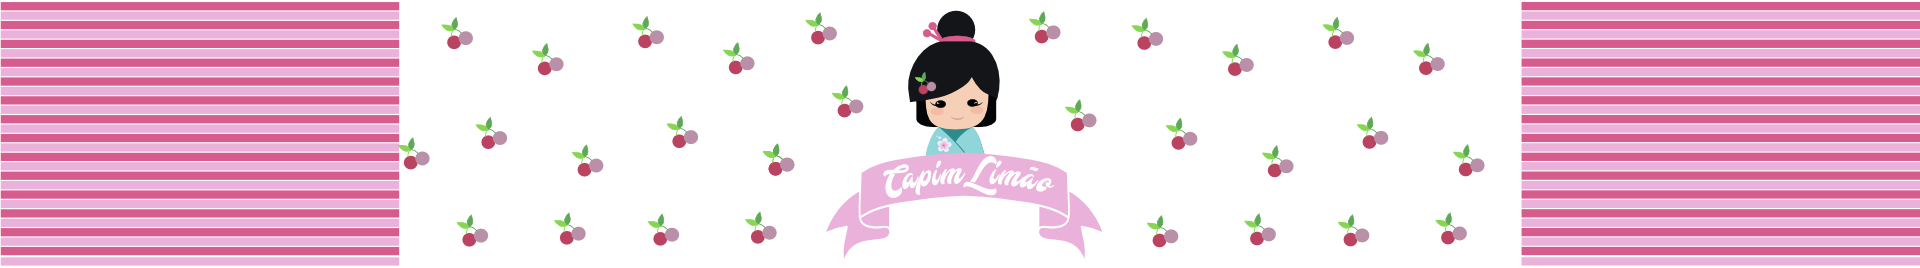 Capim Limo handmade